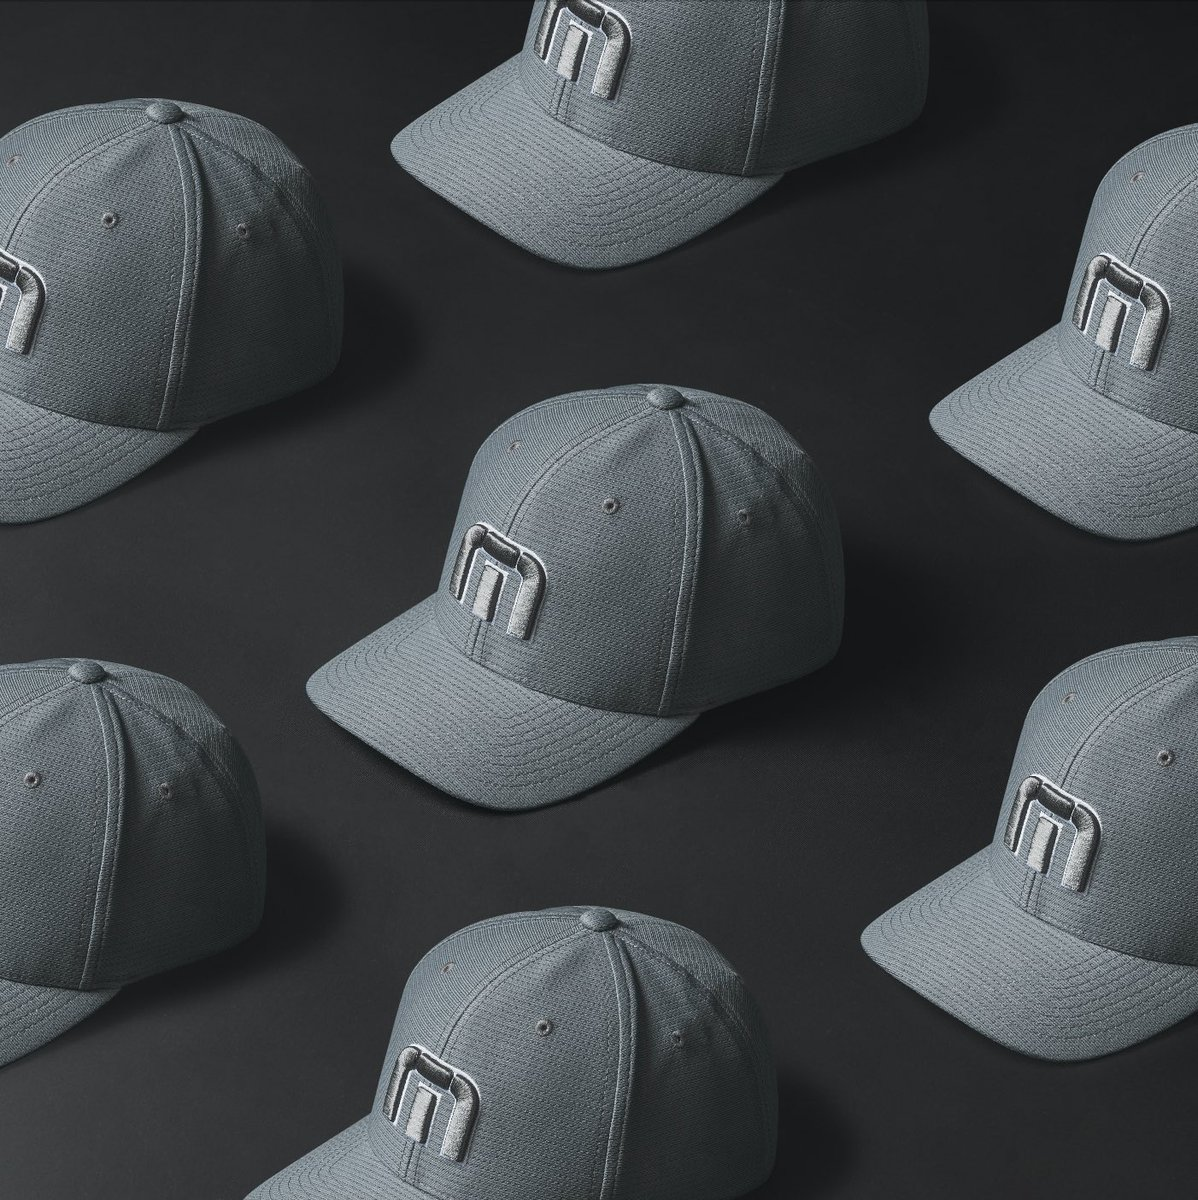 Hatters gonna hat! Get your cap game sorted for 2020 with @travismathew_eu .   #travismathew #capgame #cap #workandplay pic.twitter.com/Bth0mFH9Vm